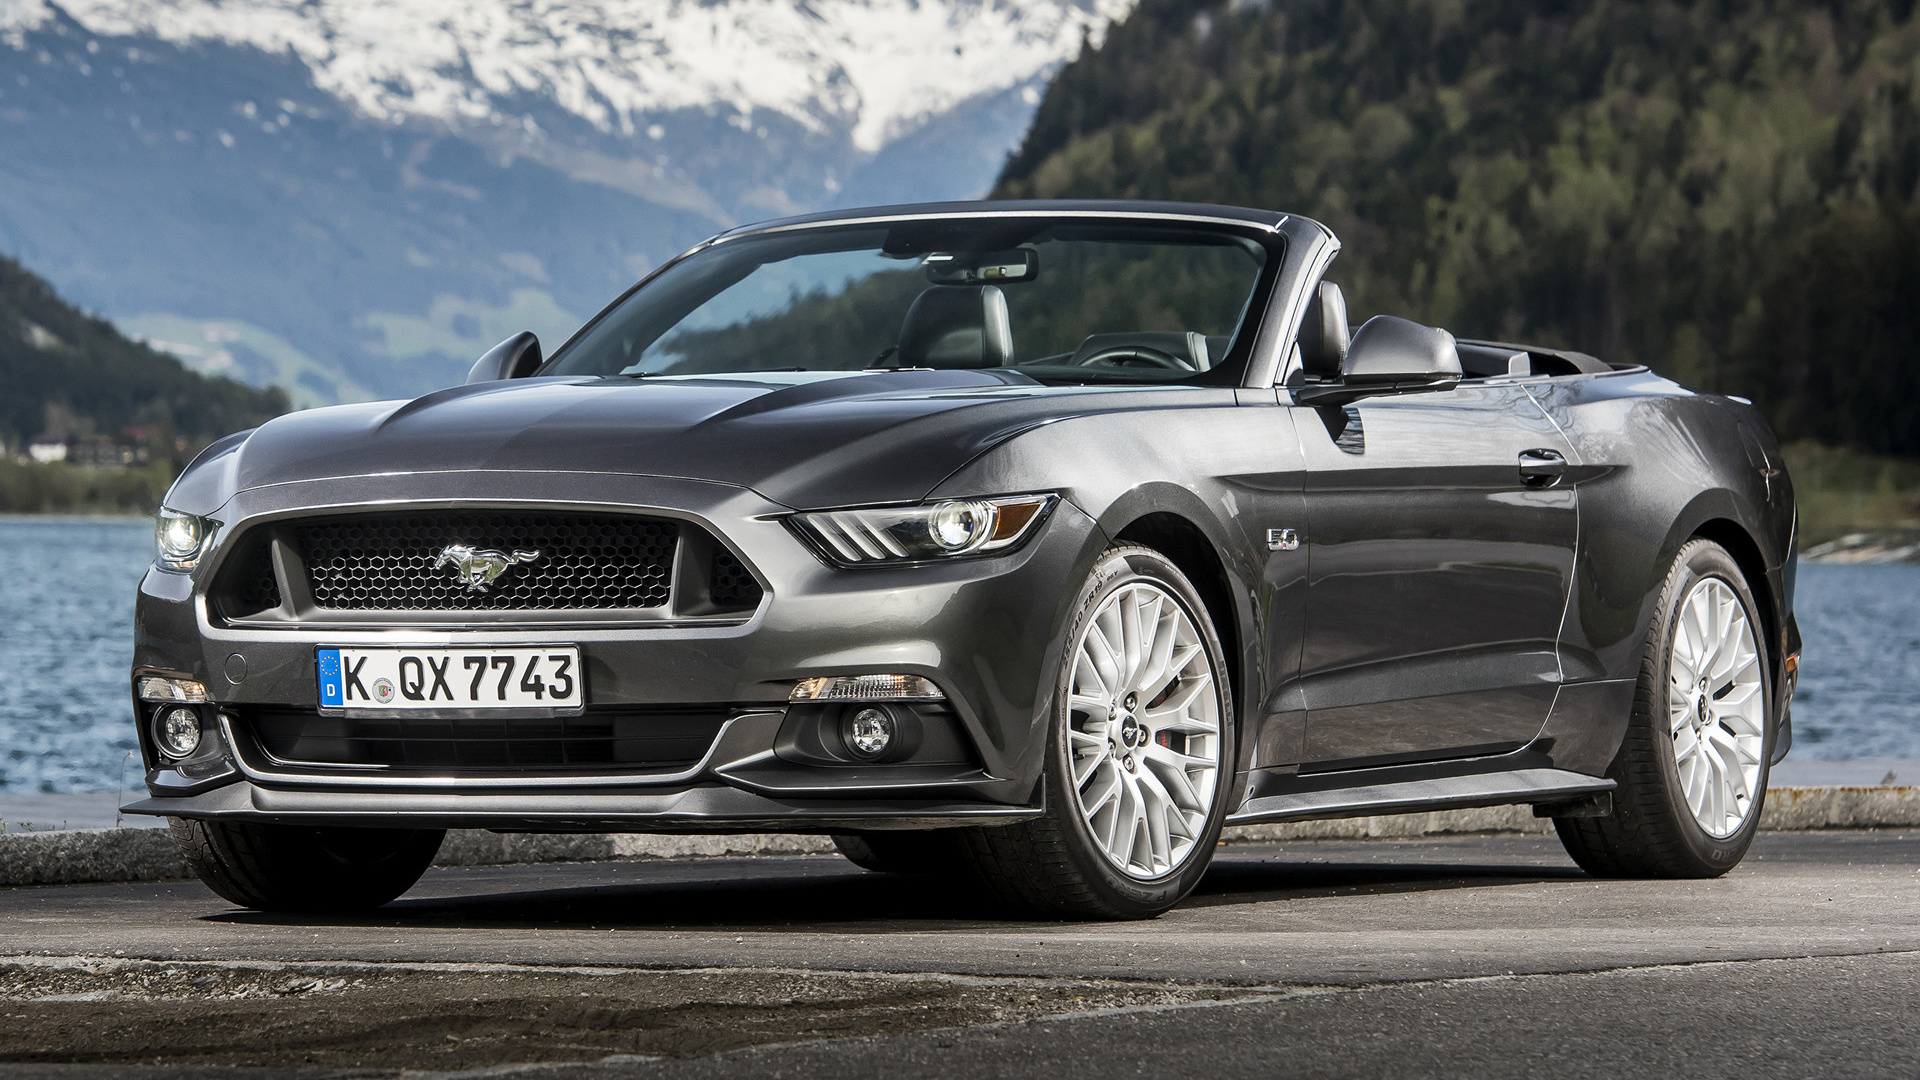 2015 Ford Mustang GT Convertible (EU) - Wallpapers and HD Images | Car Pixel